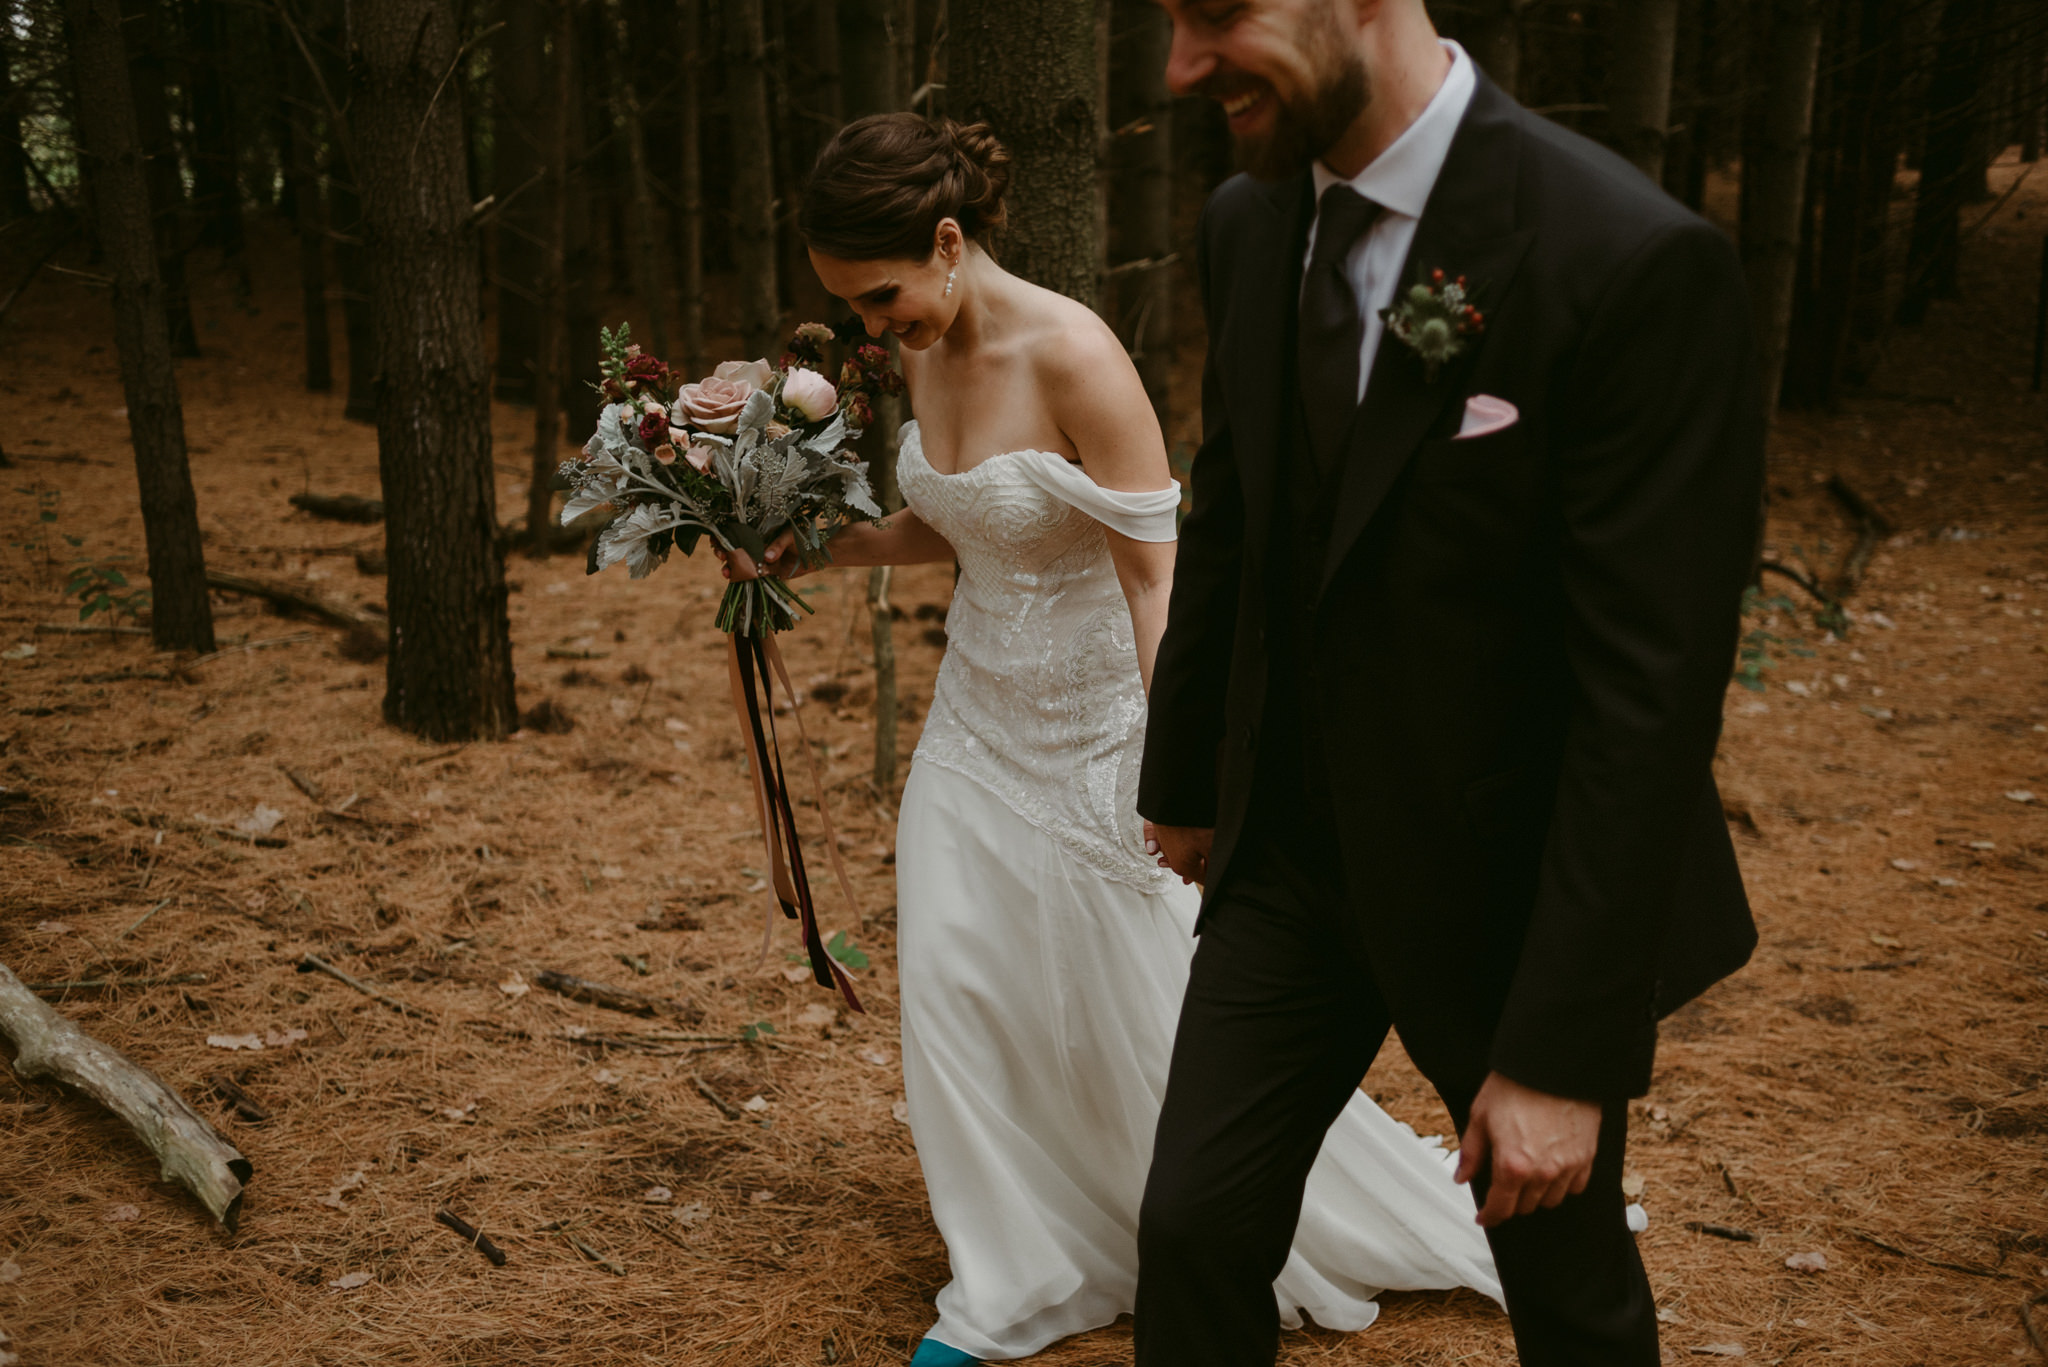 Bride and groom holding hands, laughing and walking in forest